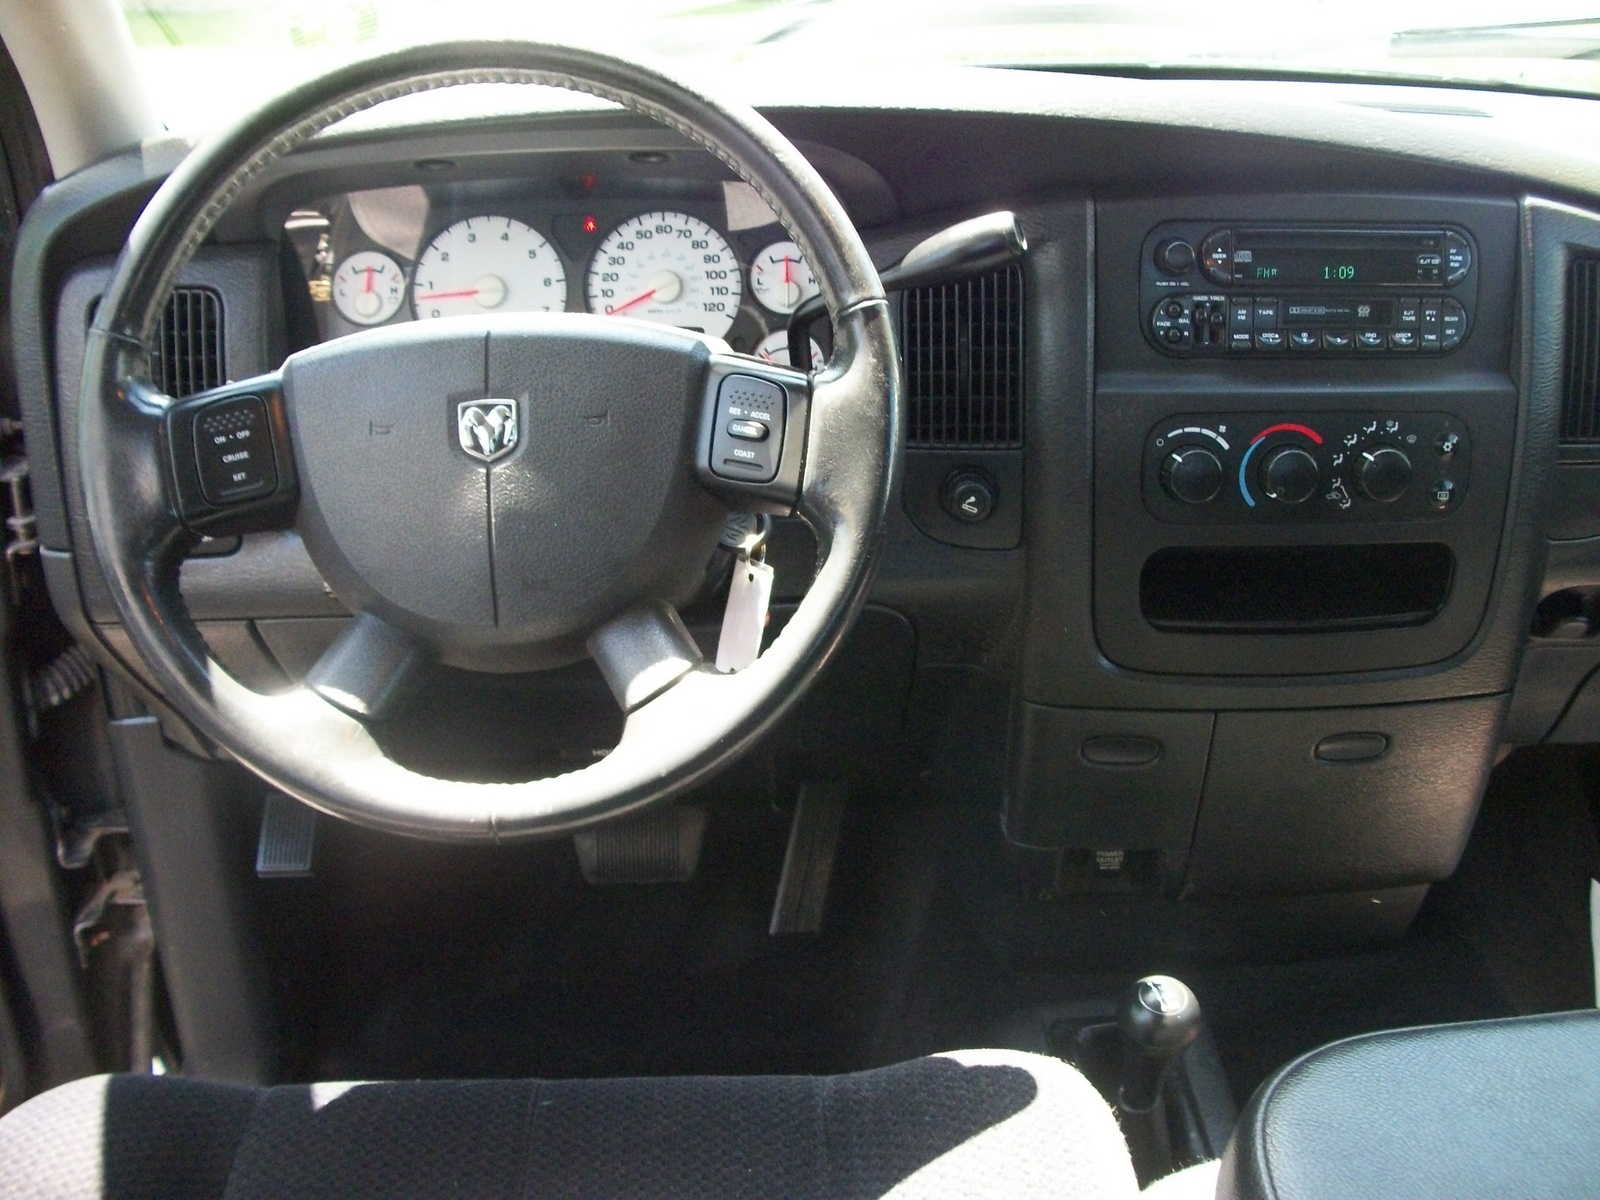 2004 dodge ram pickup 1500 interior pictures cargurus. Black Bedroom Furniture Sets. Home Design Ideas